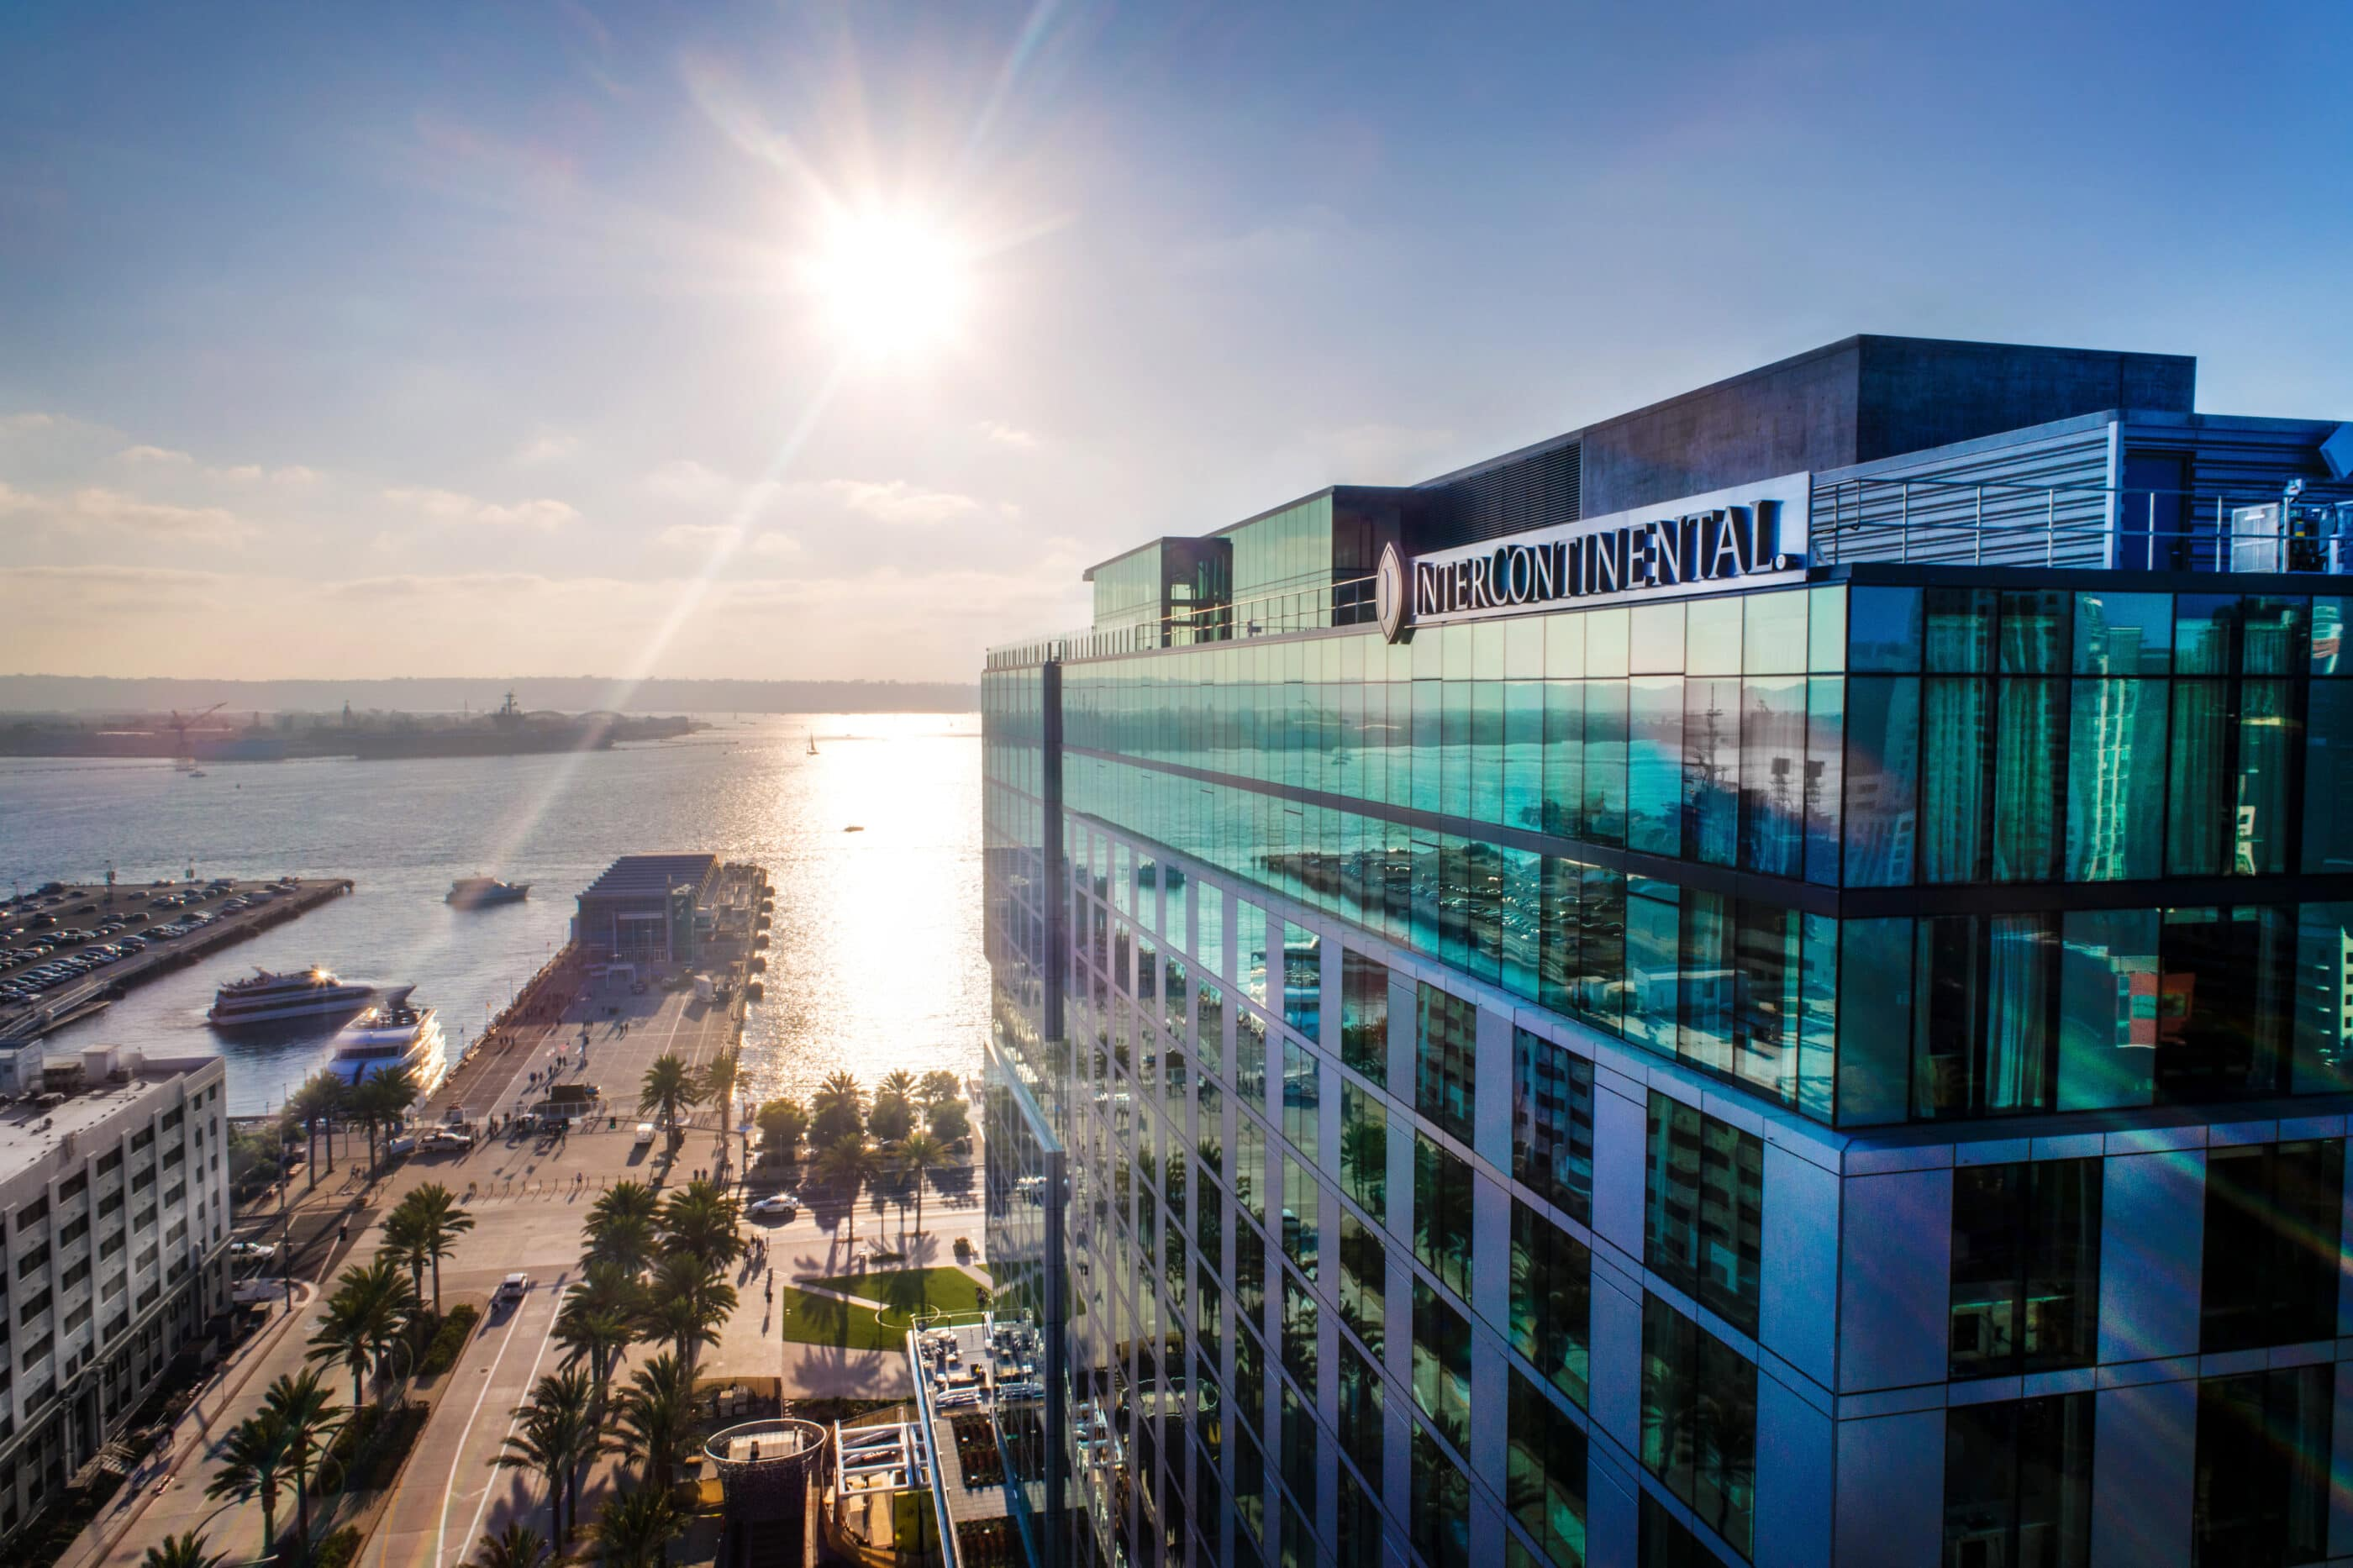 Exterior view of the InterContinental San Diego building looking out toward San Diego Bay across the street.